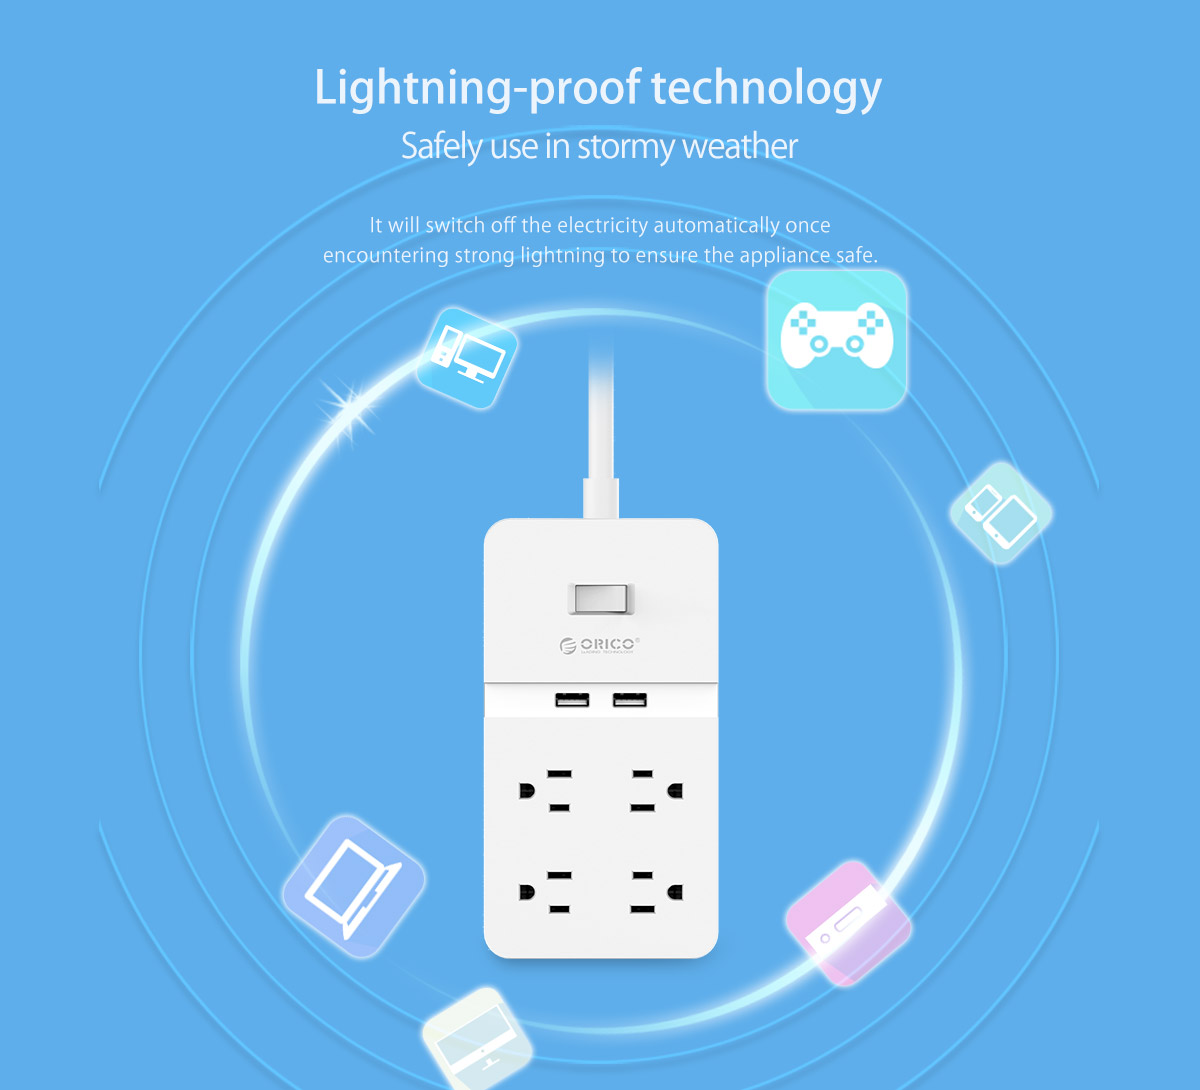 lightning-proof technology